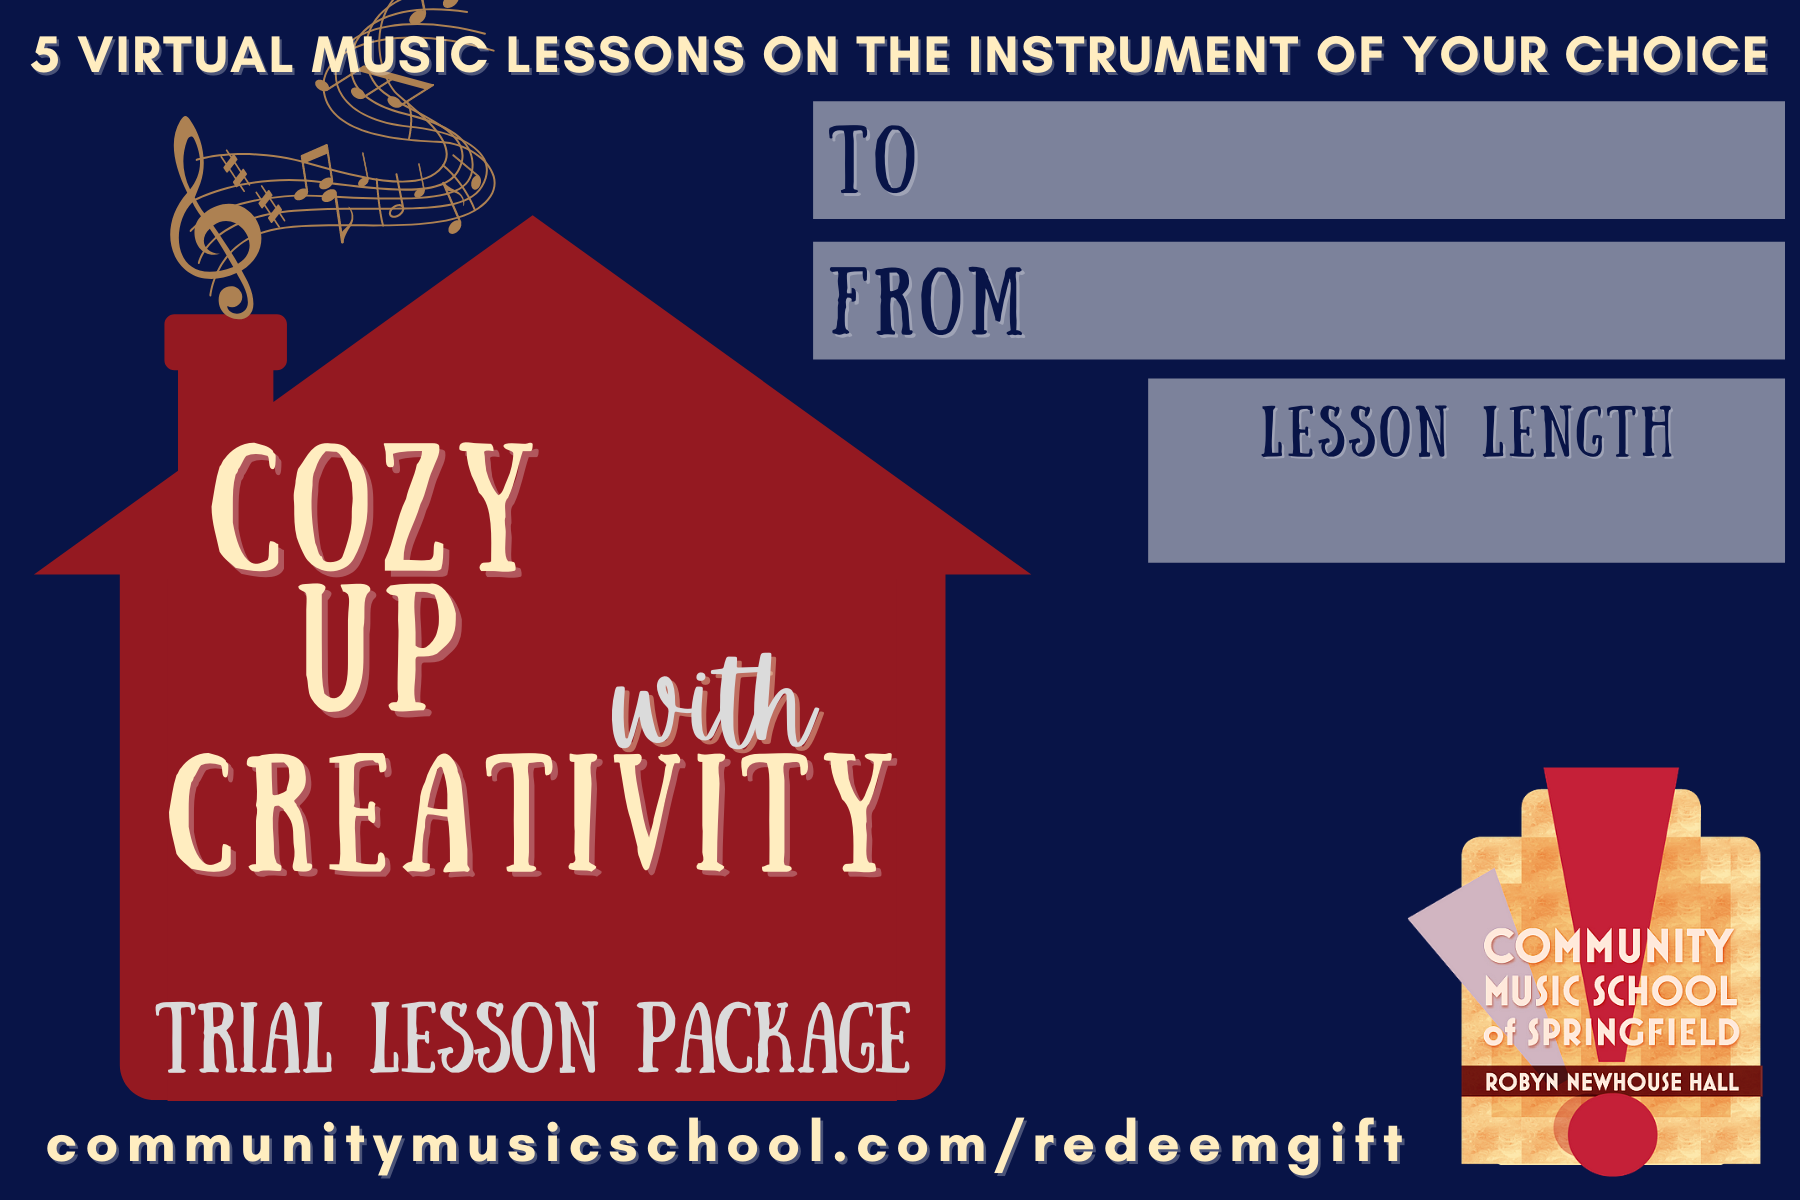 Gift package card for trial lessons, red silhouette of house with music coming out of the chimney and text on the front, blue background